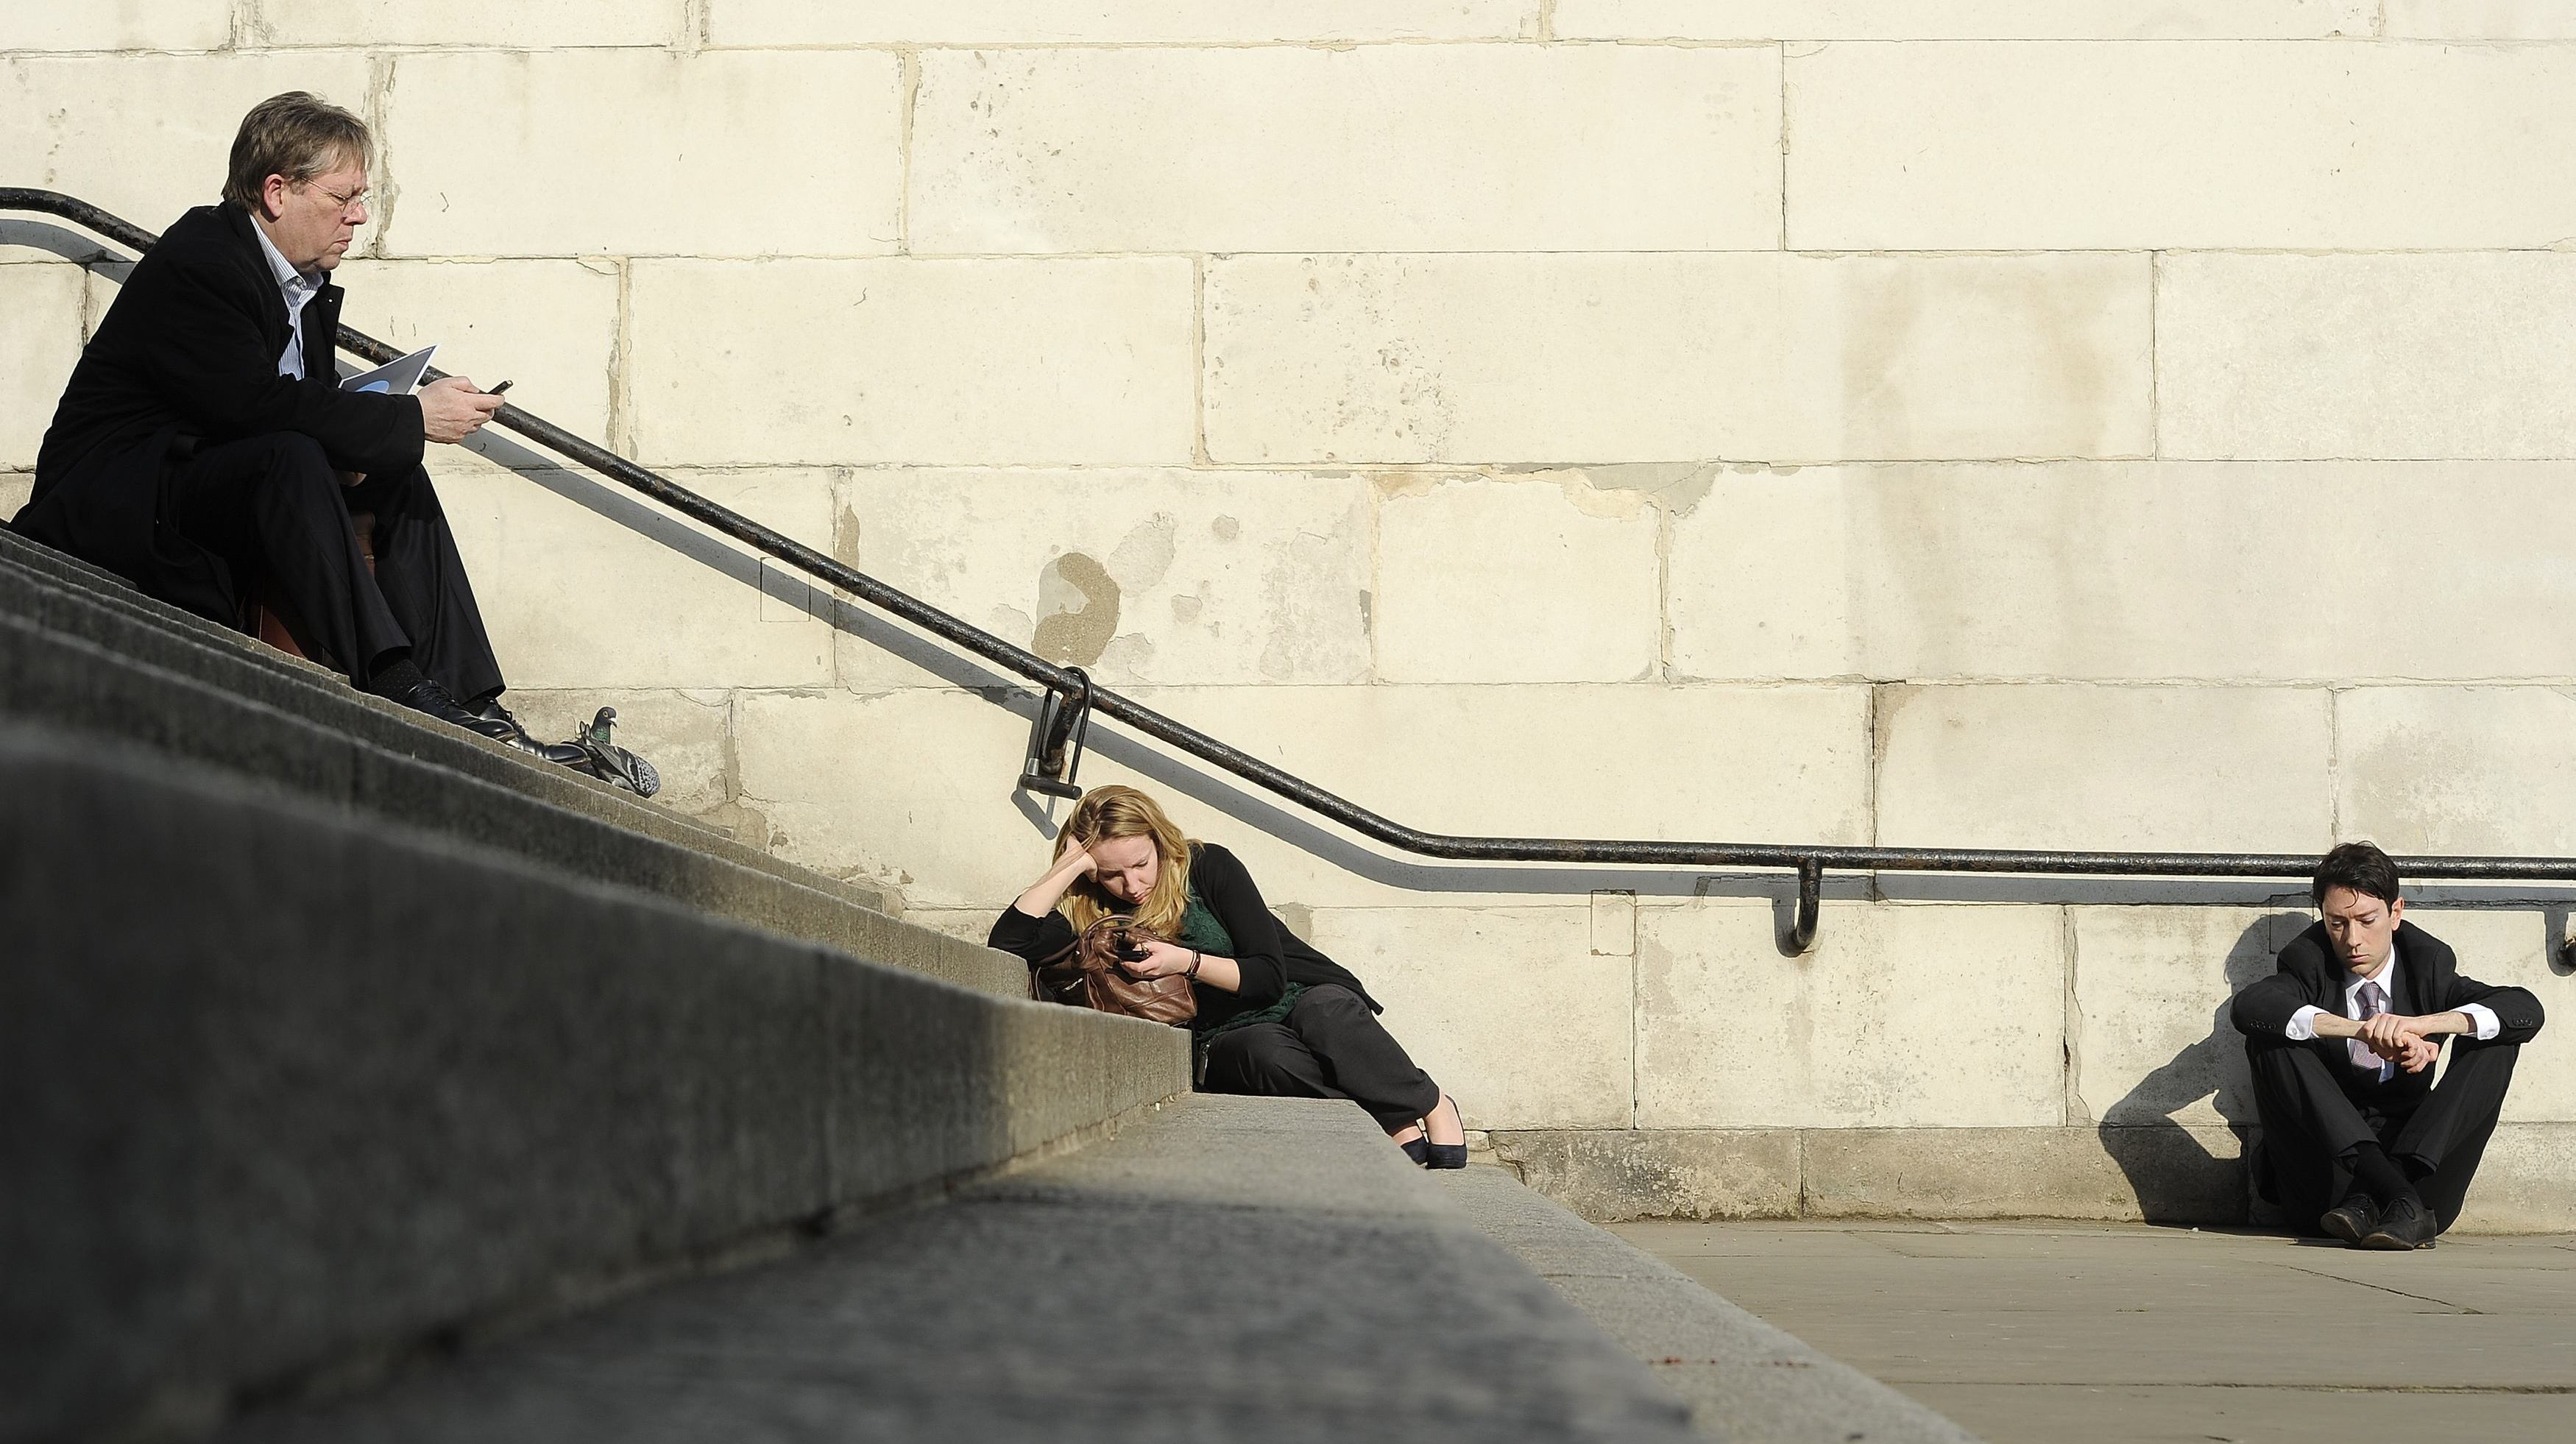 People sit in the sunshine in central London March 1, 2012. REUTERS/Paul Hackett